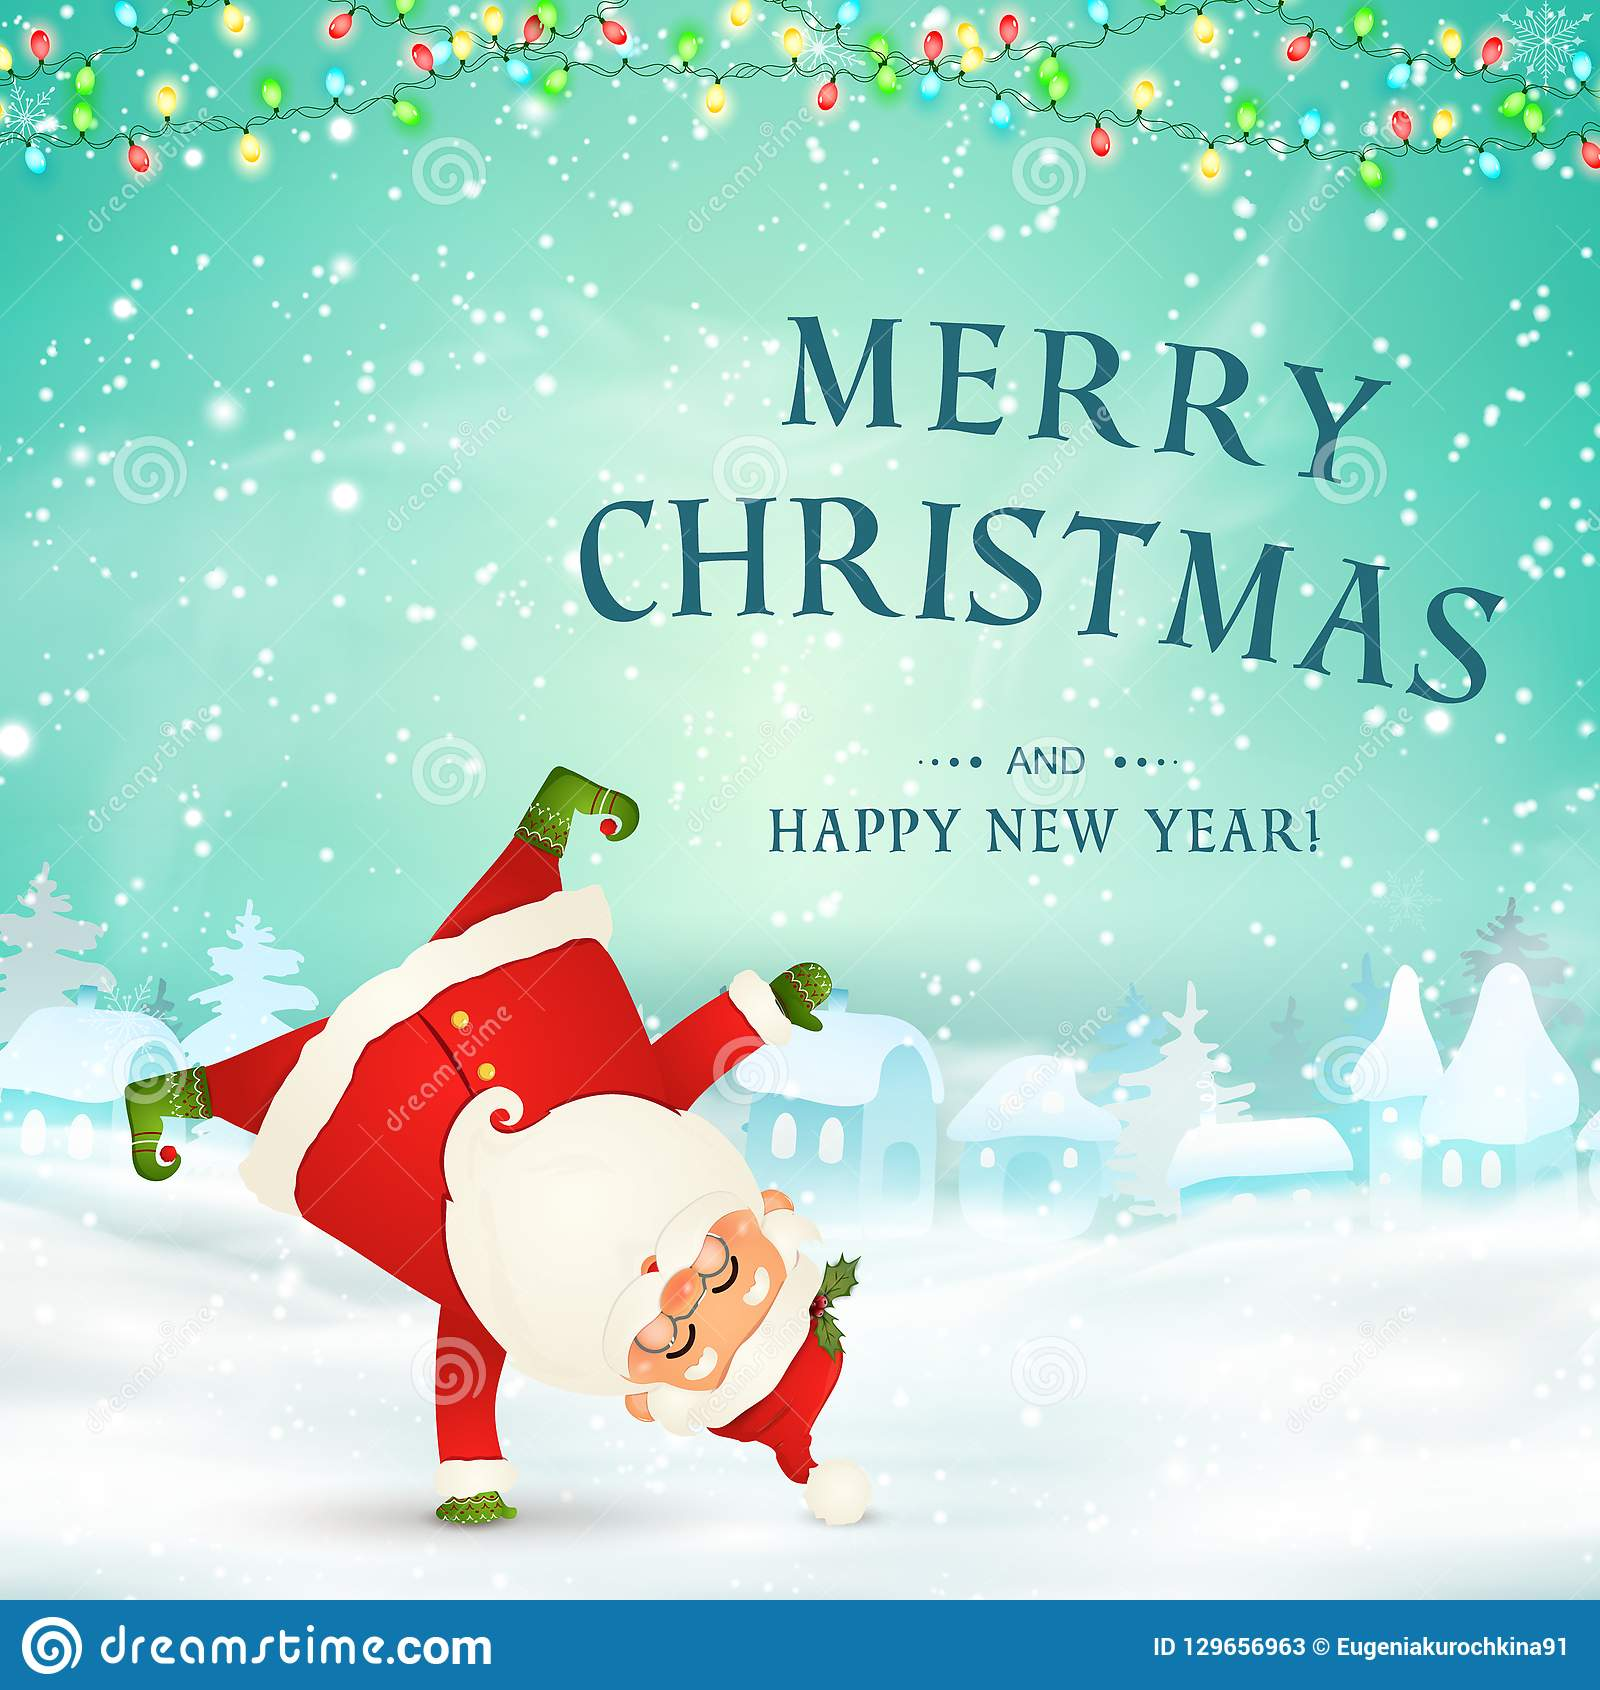 Funny Merry Christmas.Merry Christmas Happy New Year Cute Funny Santa Claus